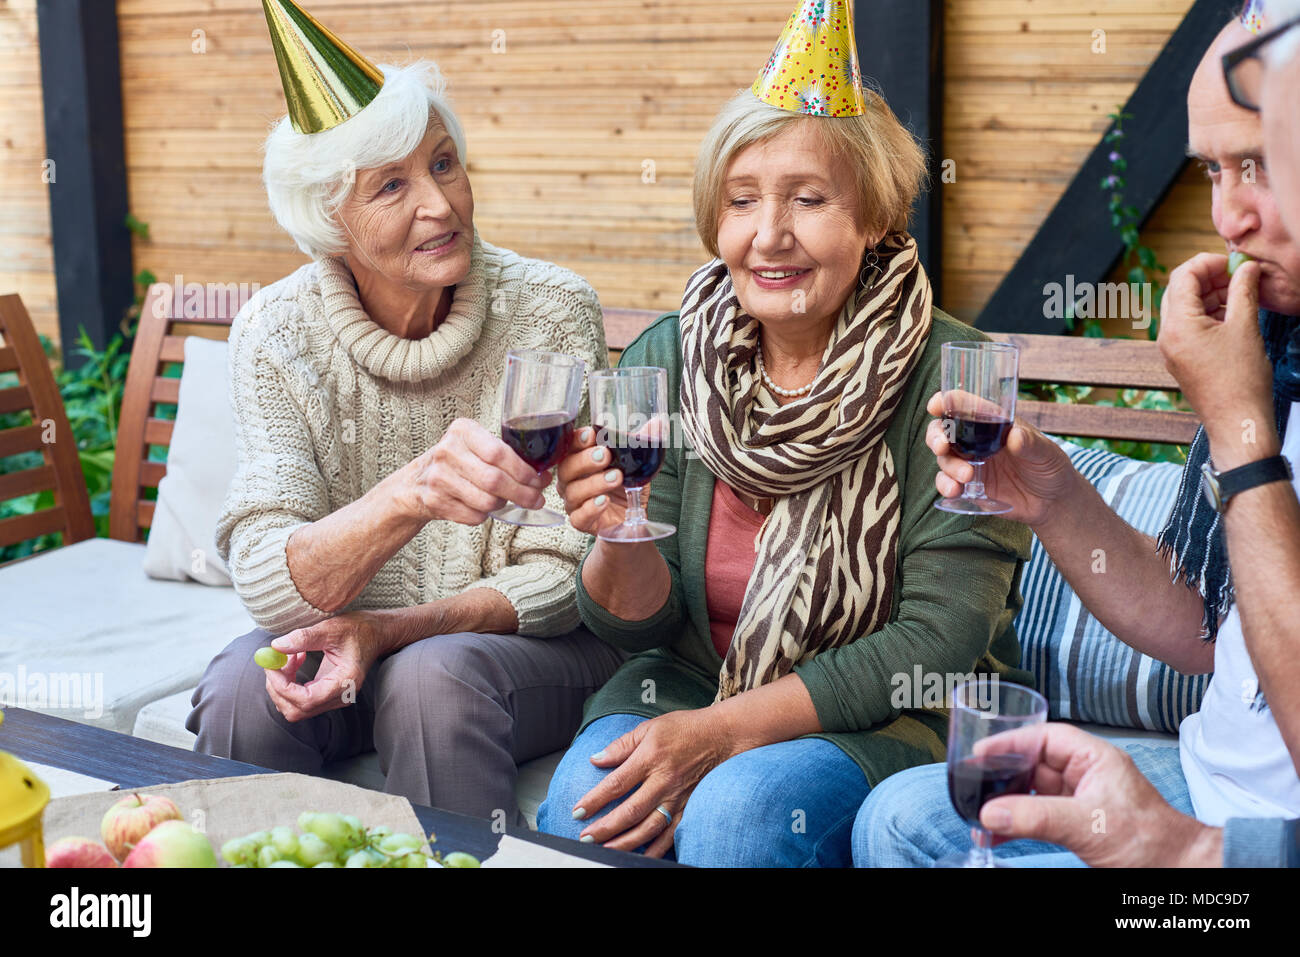 Happy Birthday Party - Stock Image